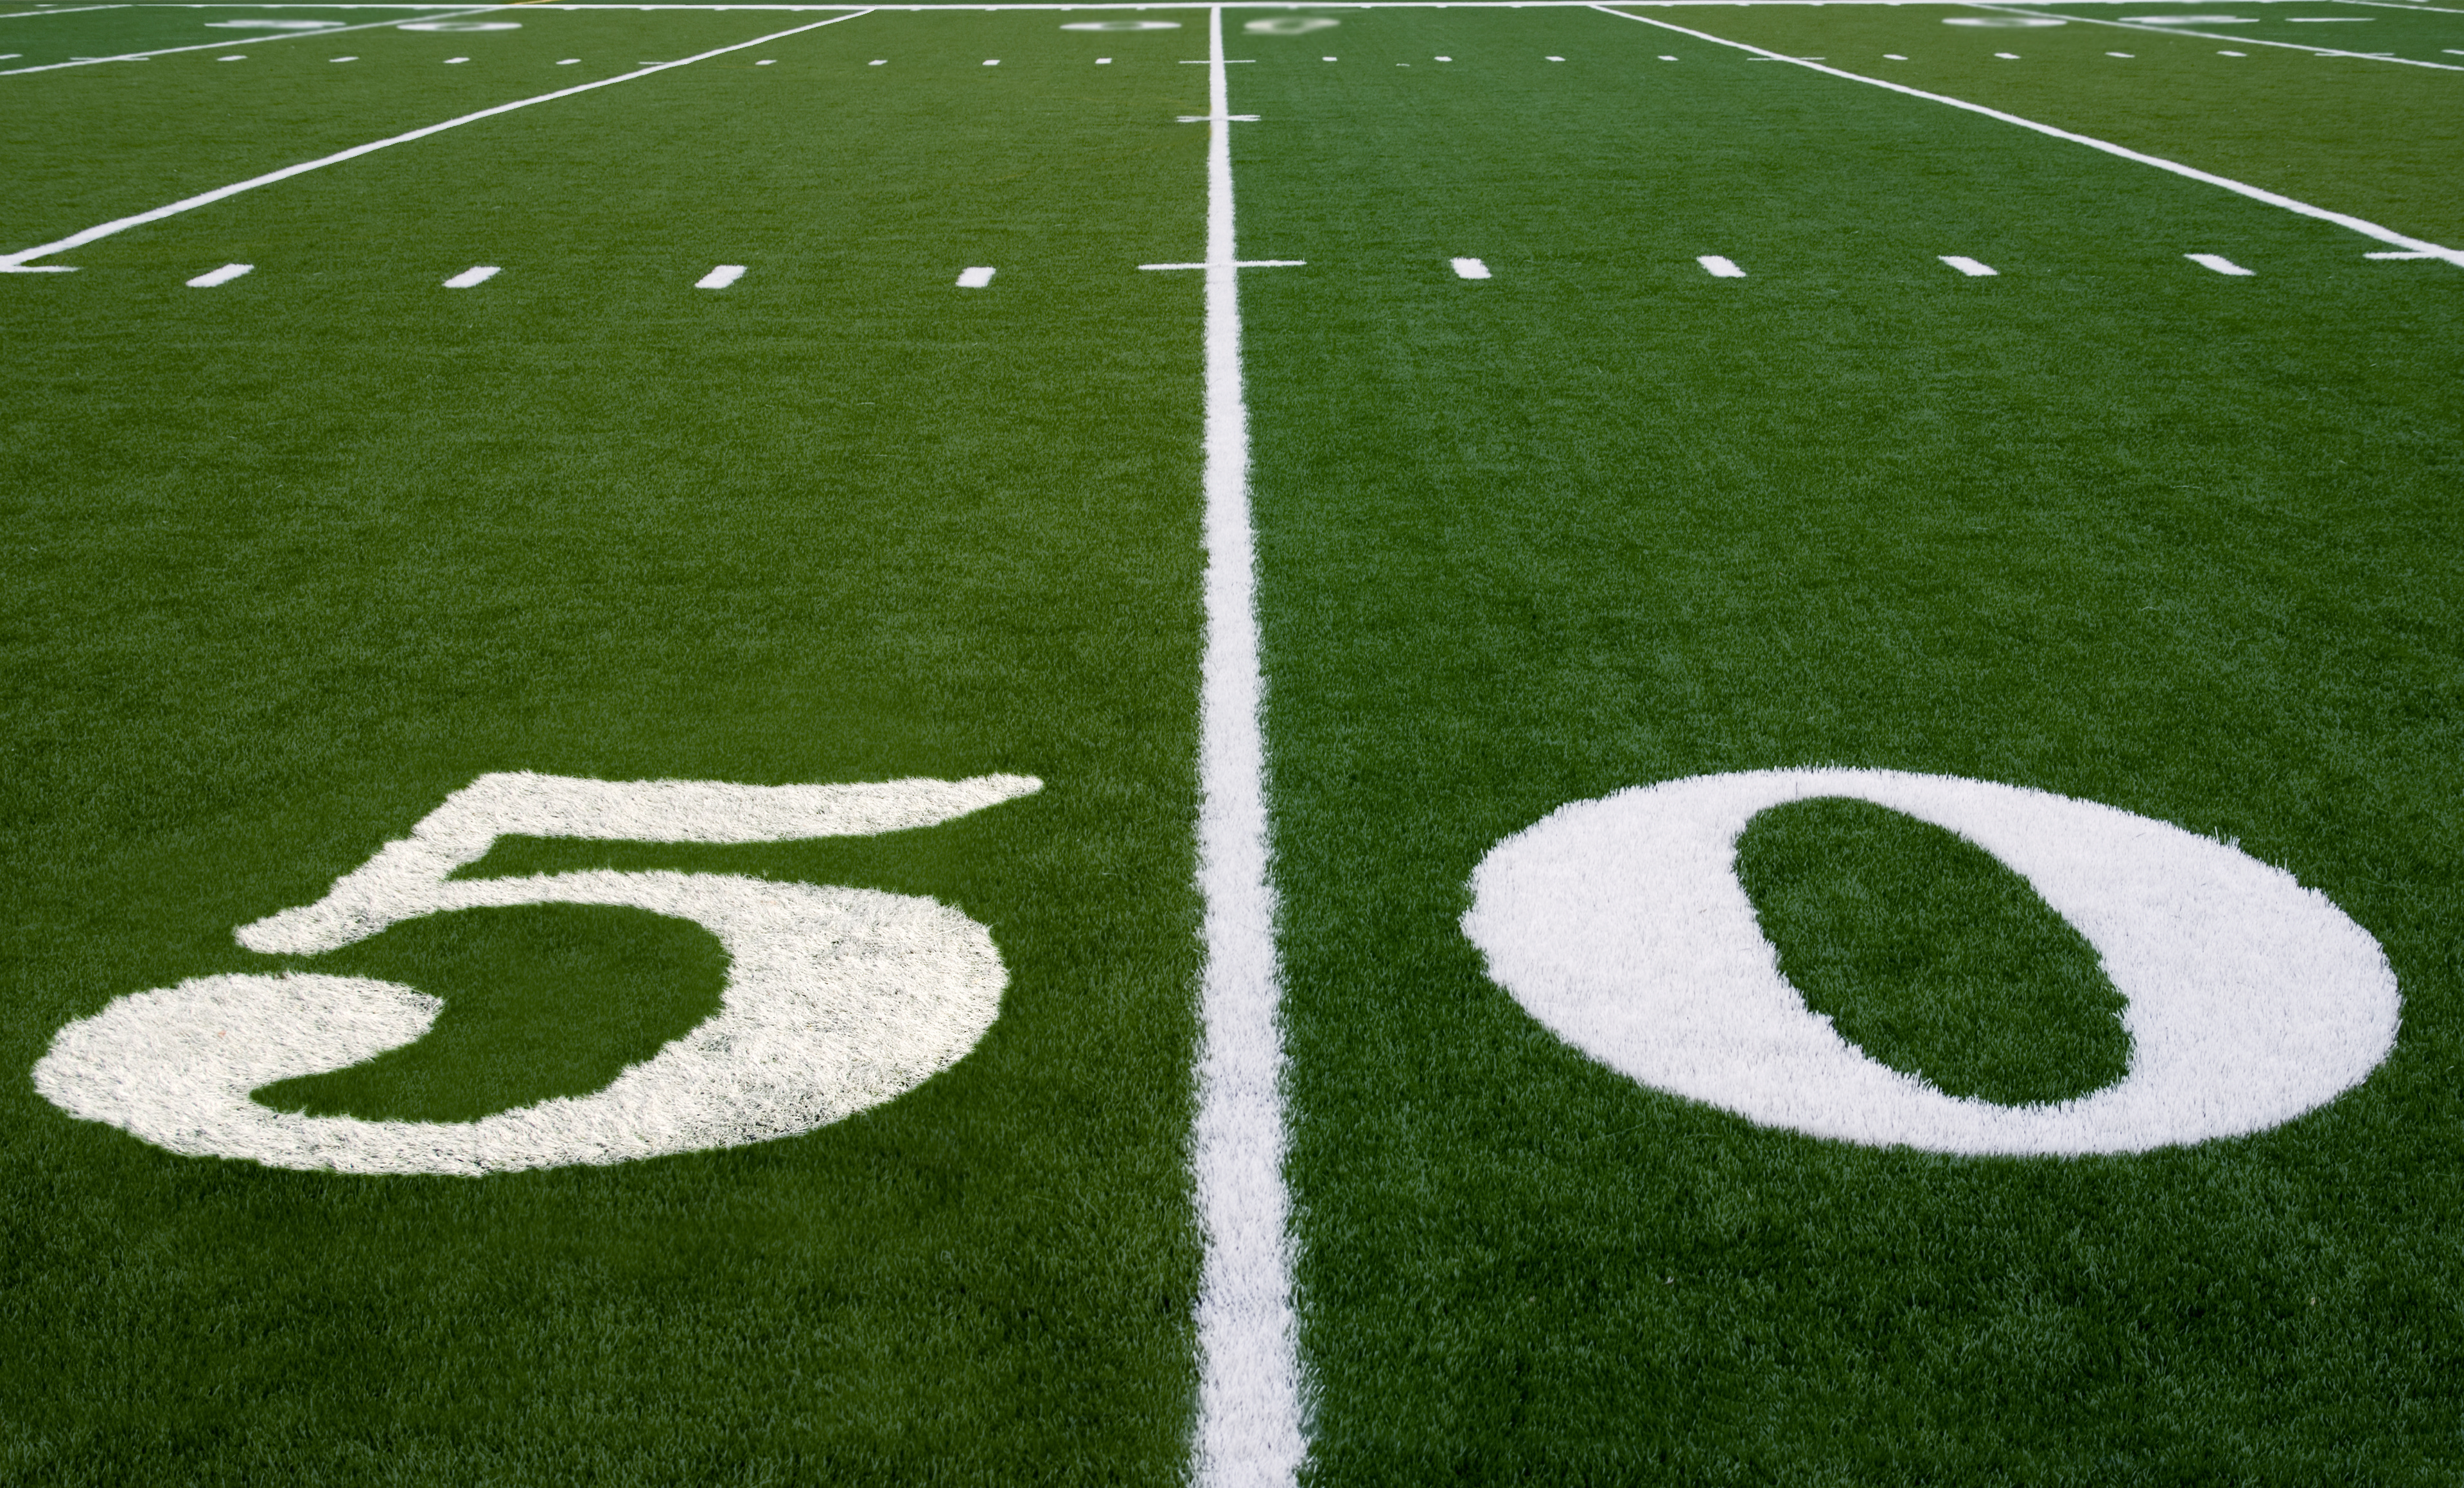 strengths vs weaknesses cardinals seahawks offenses bring much 50 yard line on an american football field